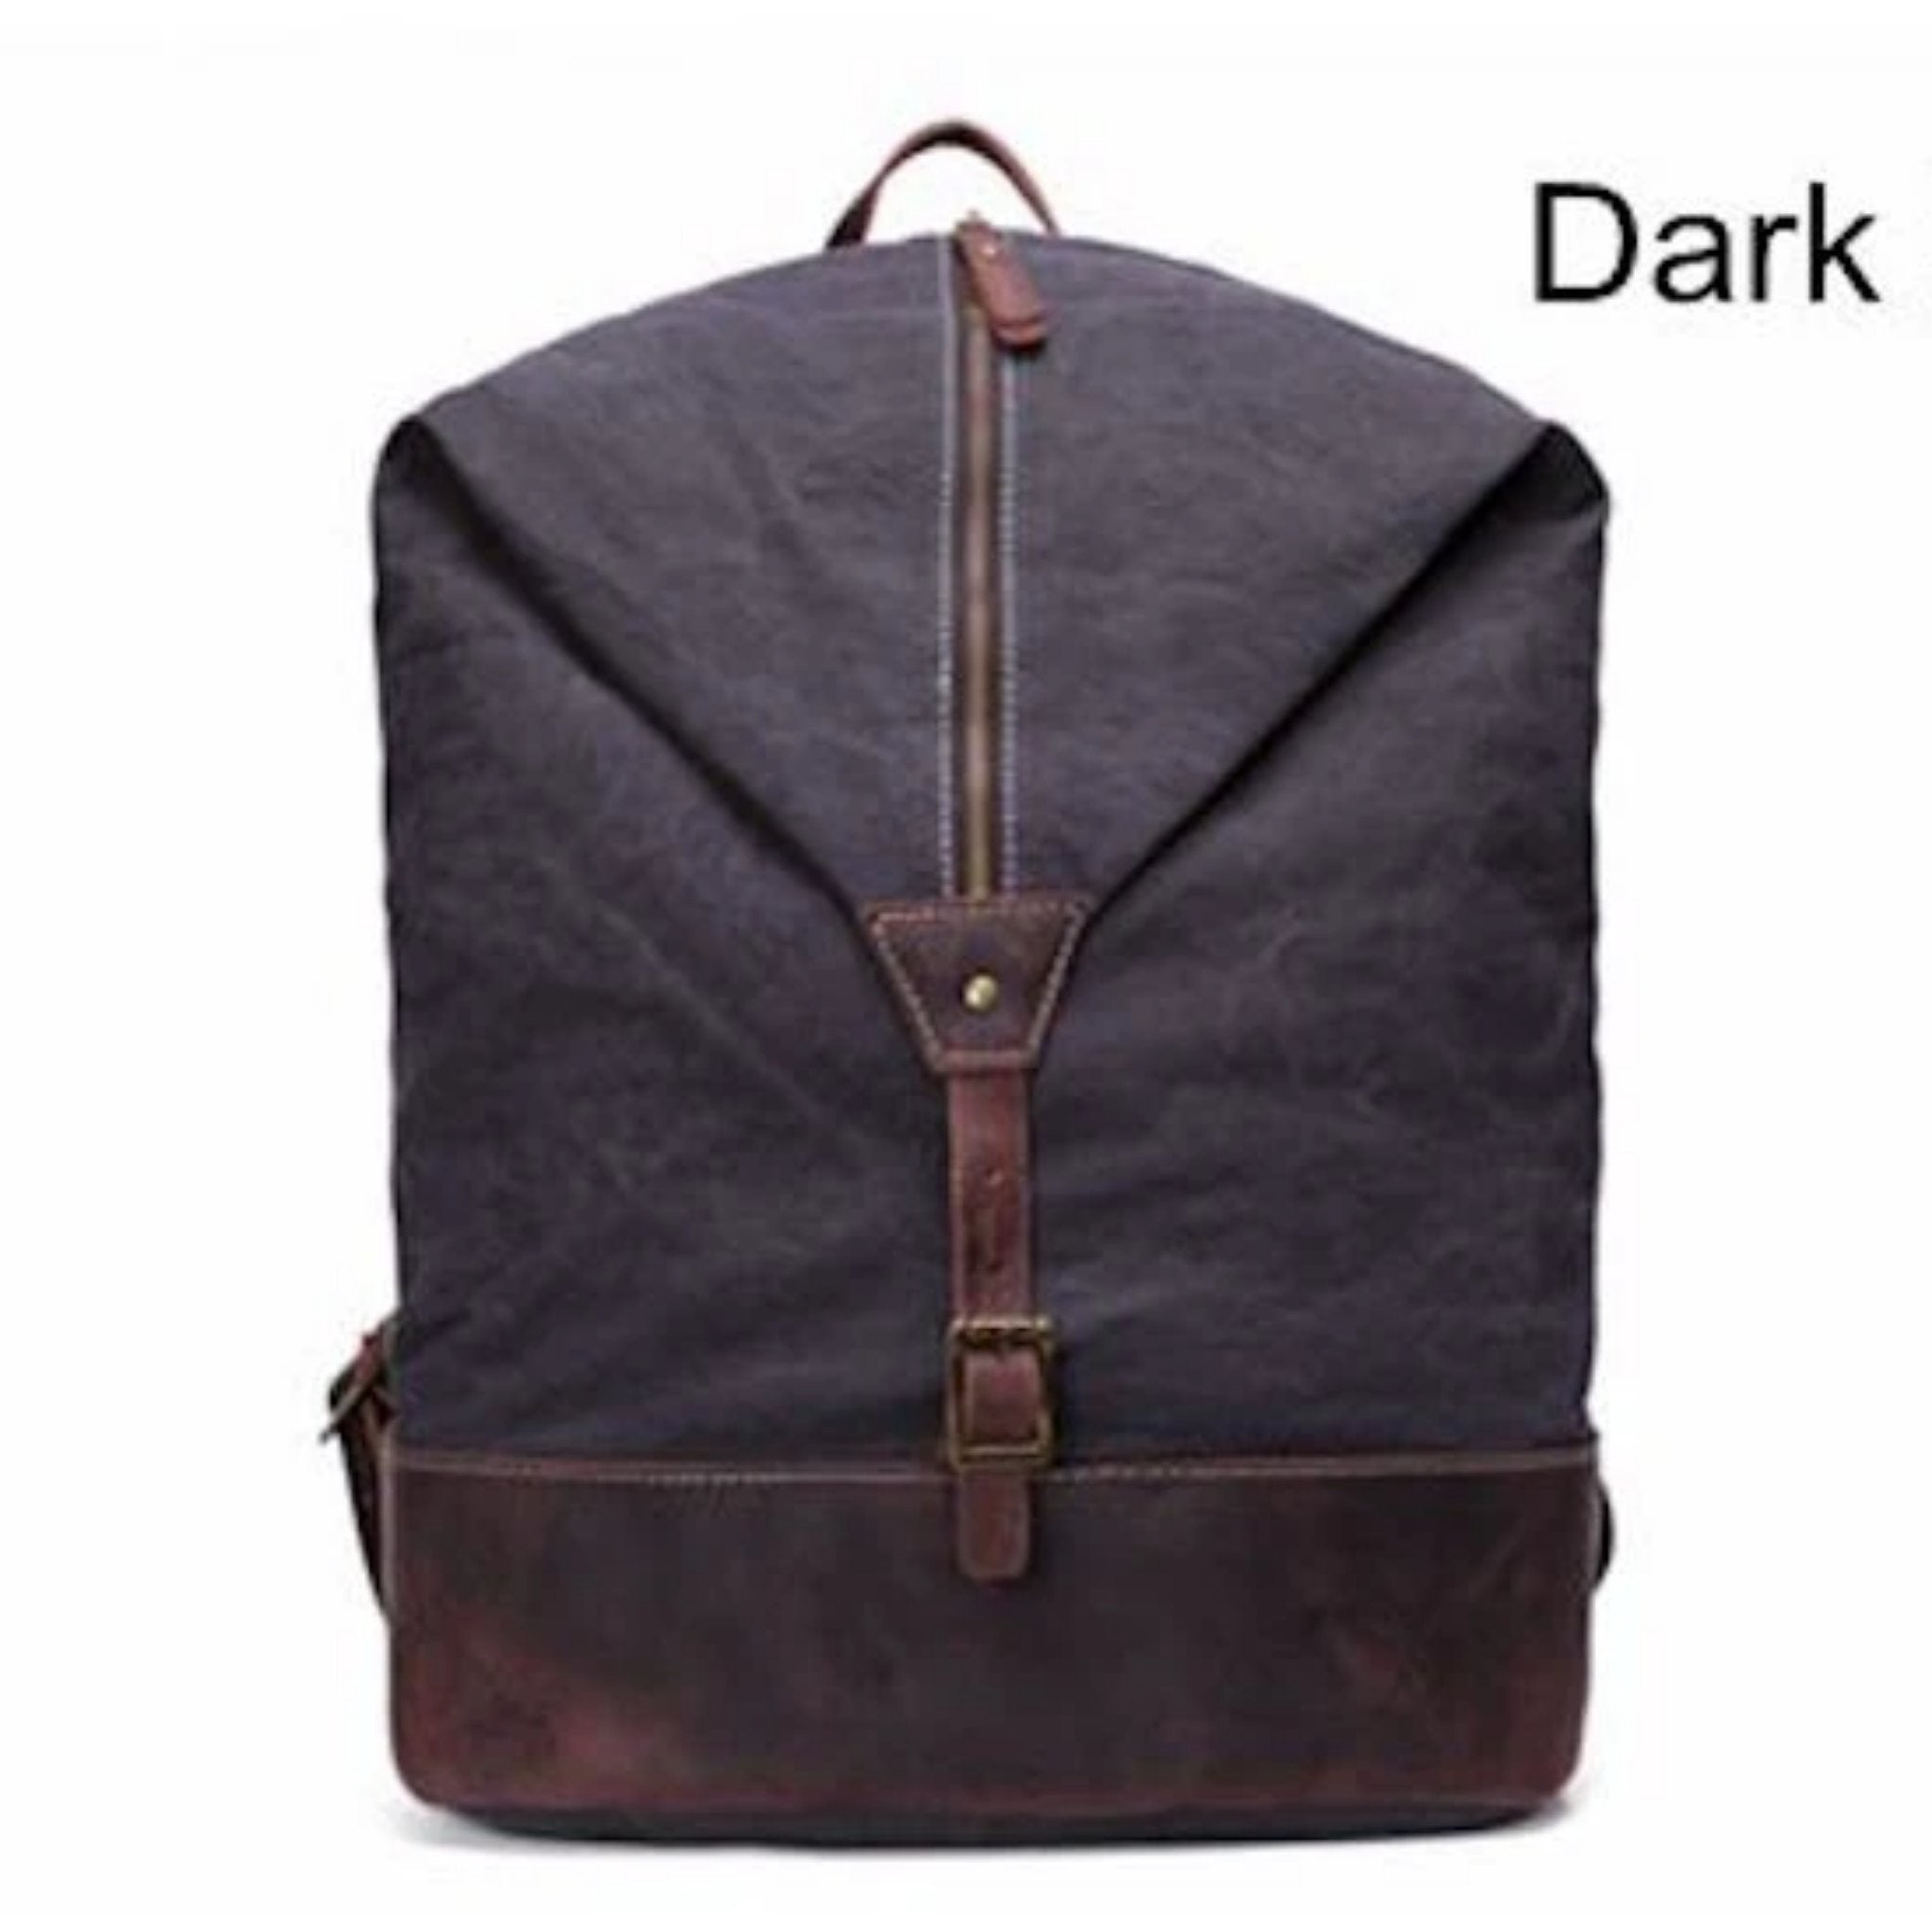 Leather Trimmed Waxed Canvas unisex School Hiking Travel Backpack - Blue Sebe Handmade Leather Bags